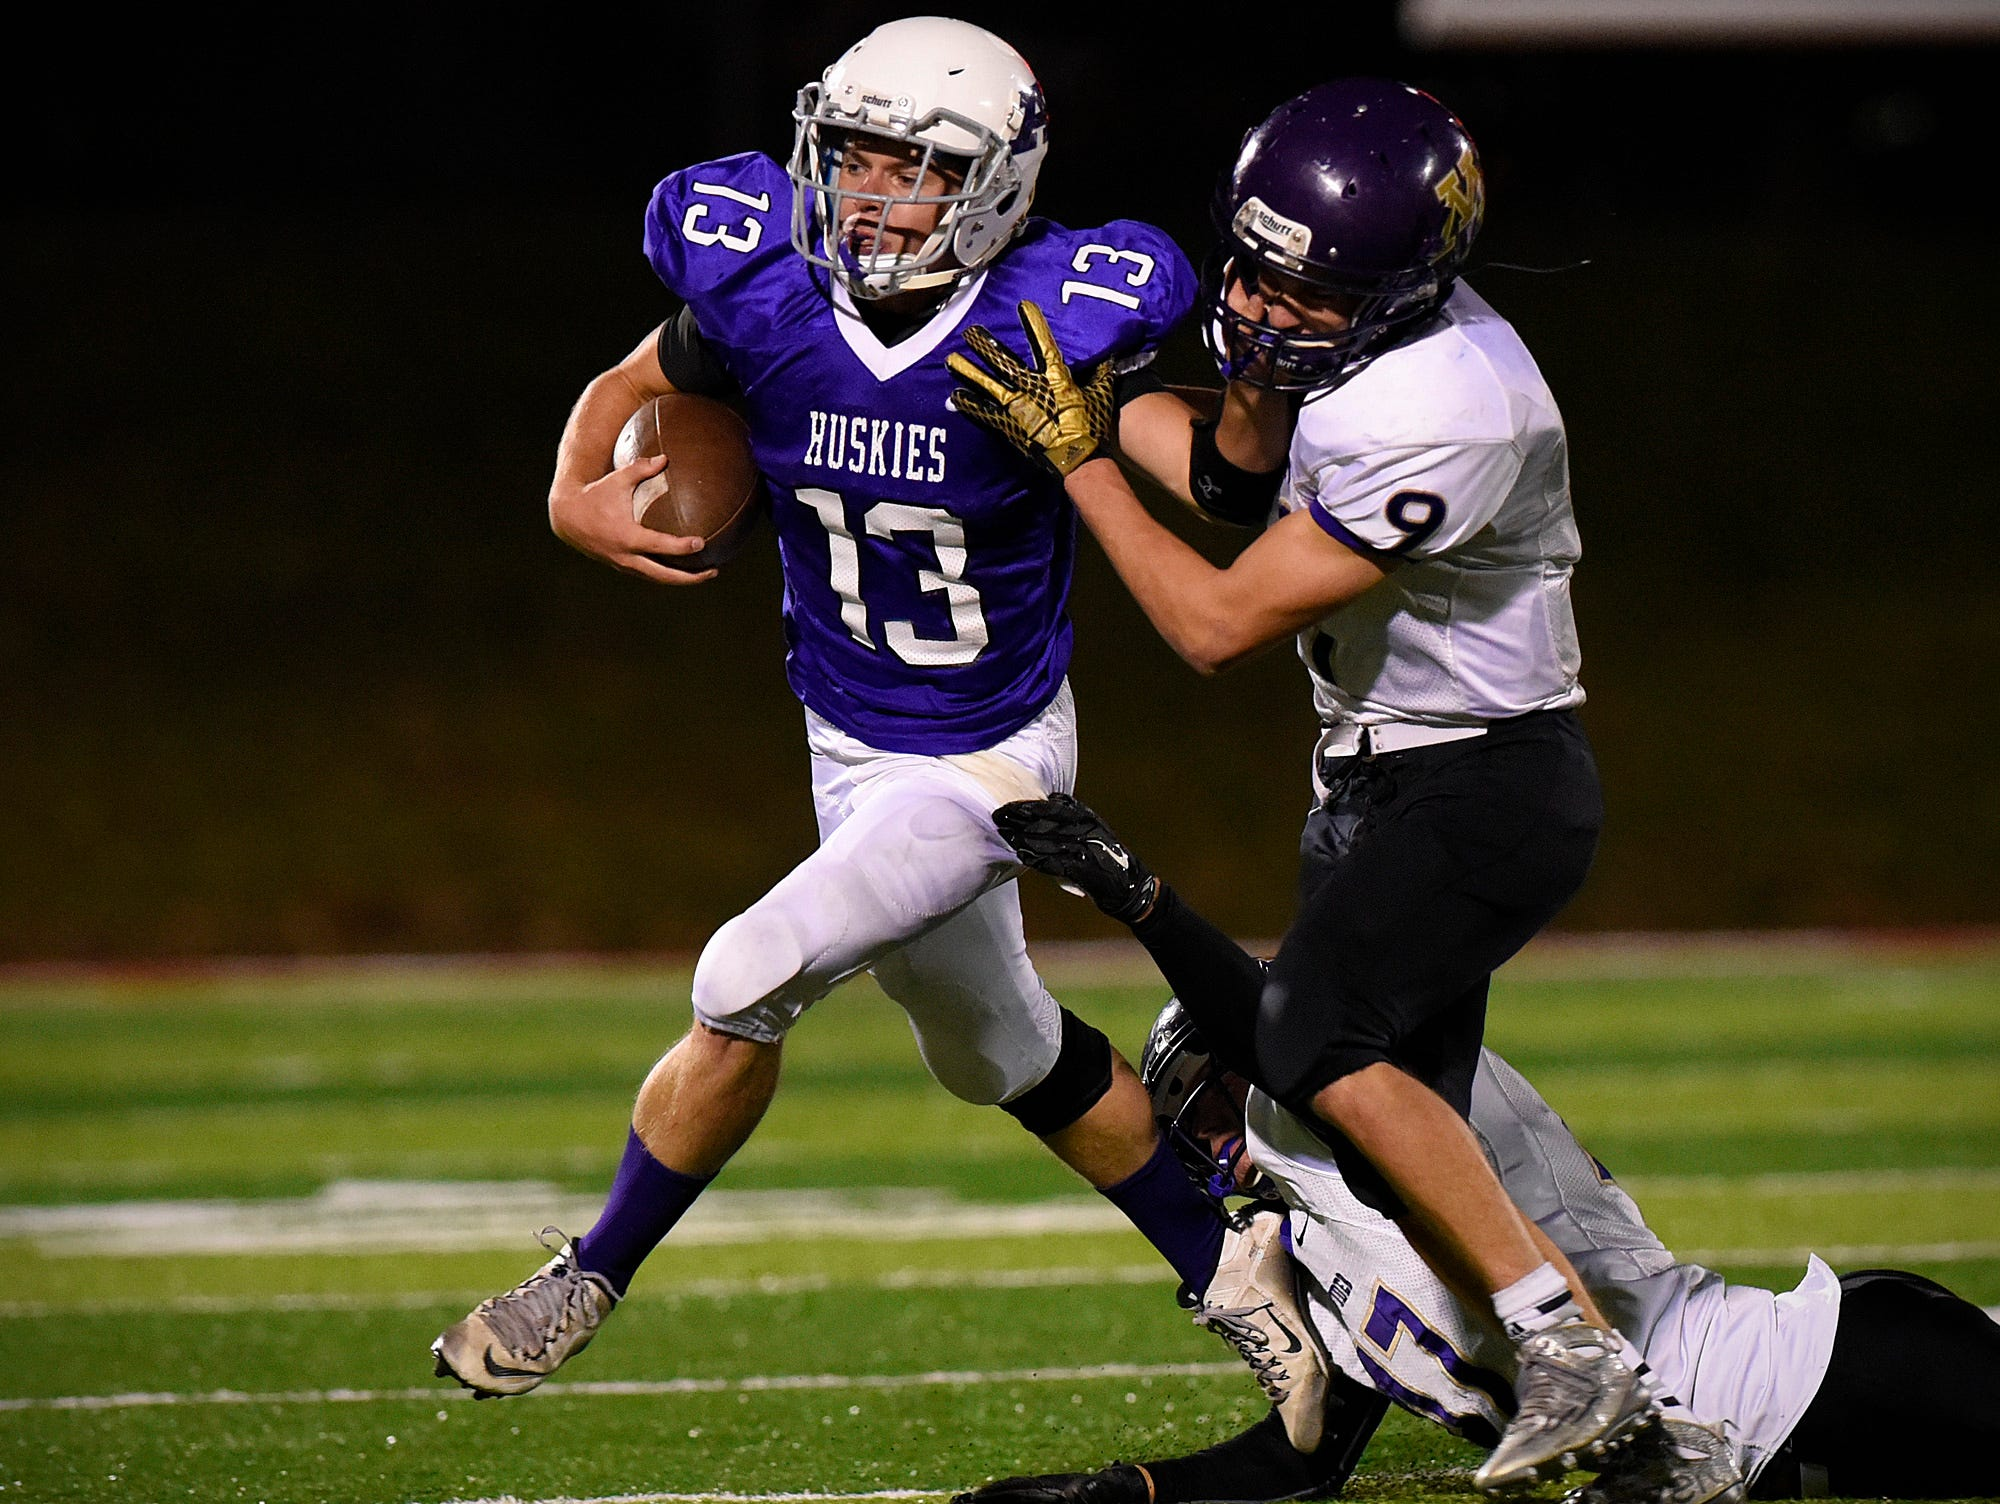 Albany's quarterback Taylor Fourre keeps the ball on a run but is brought down by Montevideo's Connor Kontz (47) and Preston Herfurth (9) after a gain during the first half Saturday, Oct. 24 at Husky Stadium.